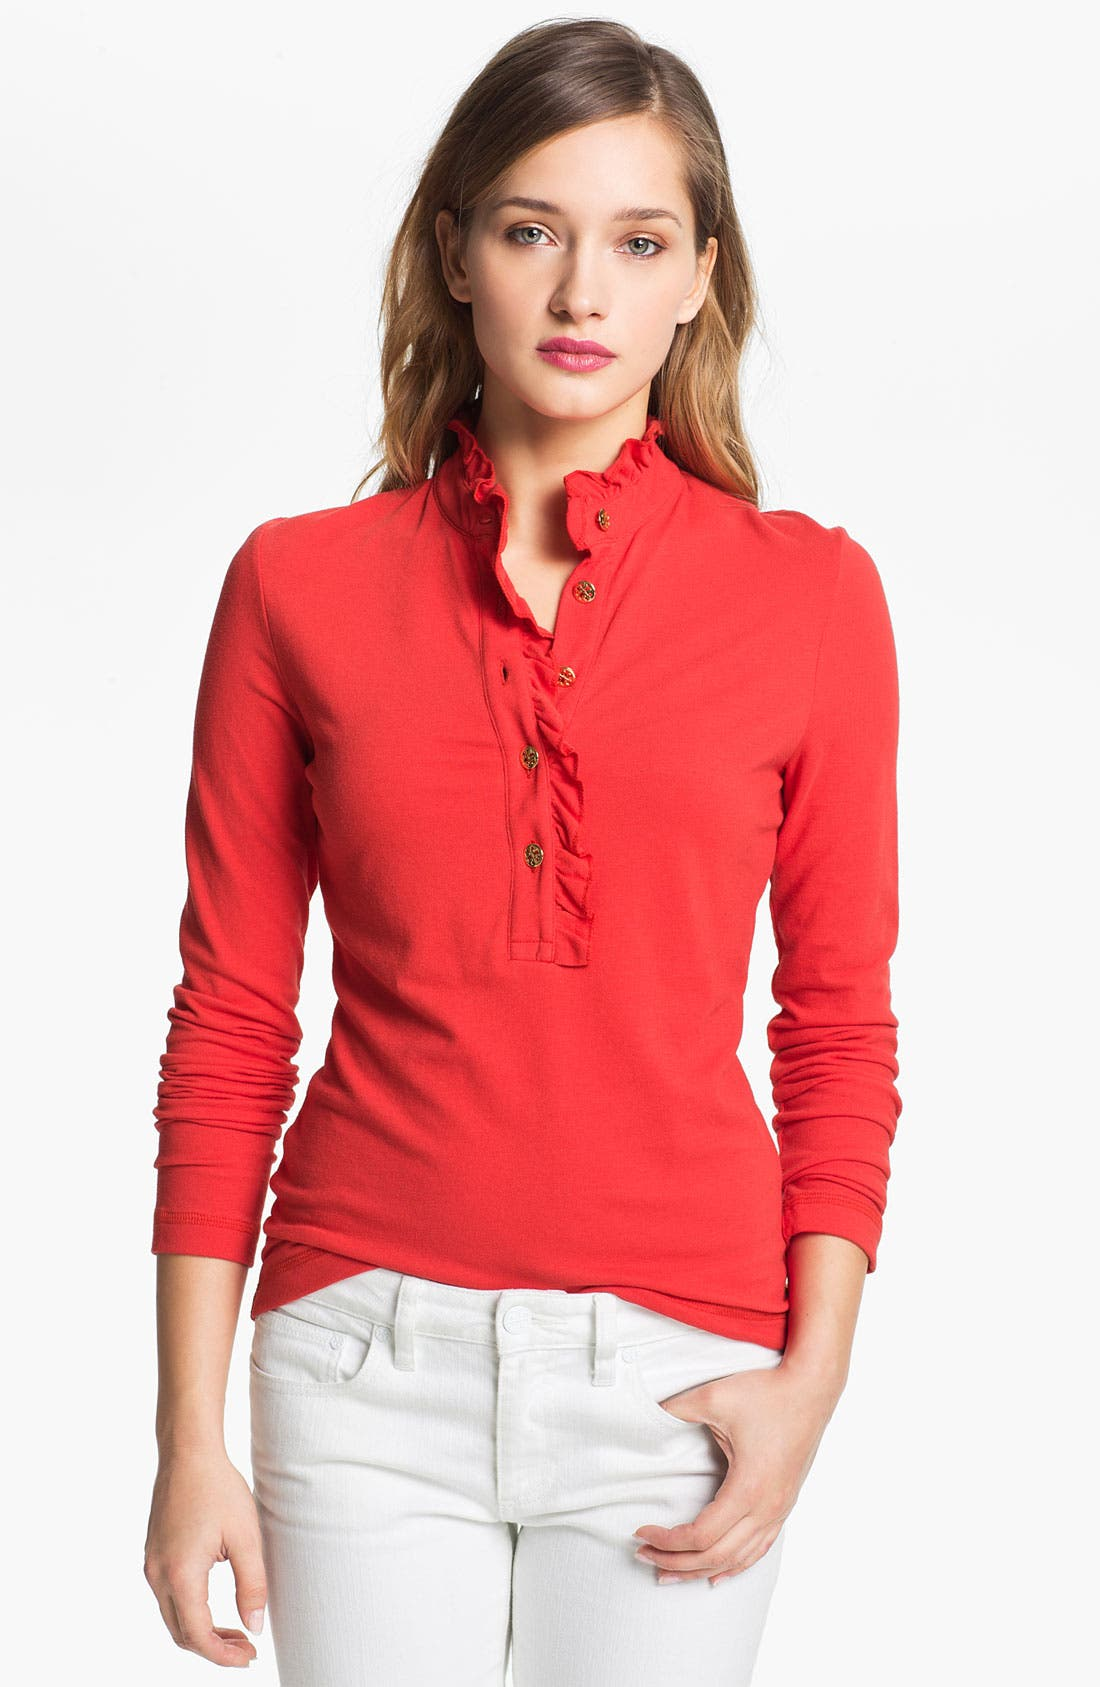 Main Image - Tory Burch 'Lidia' Long Sleeve Polo